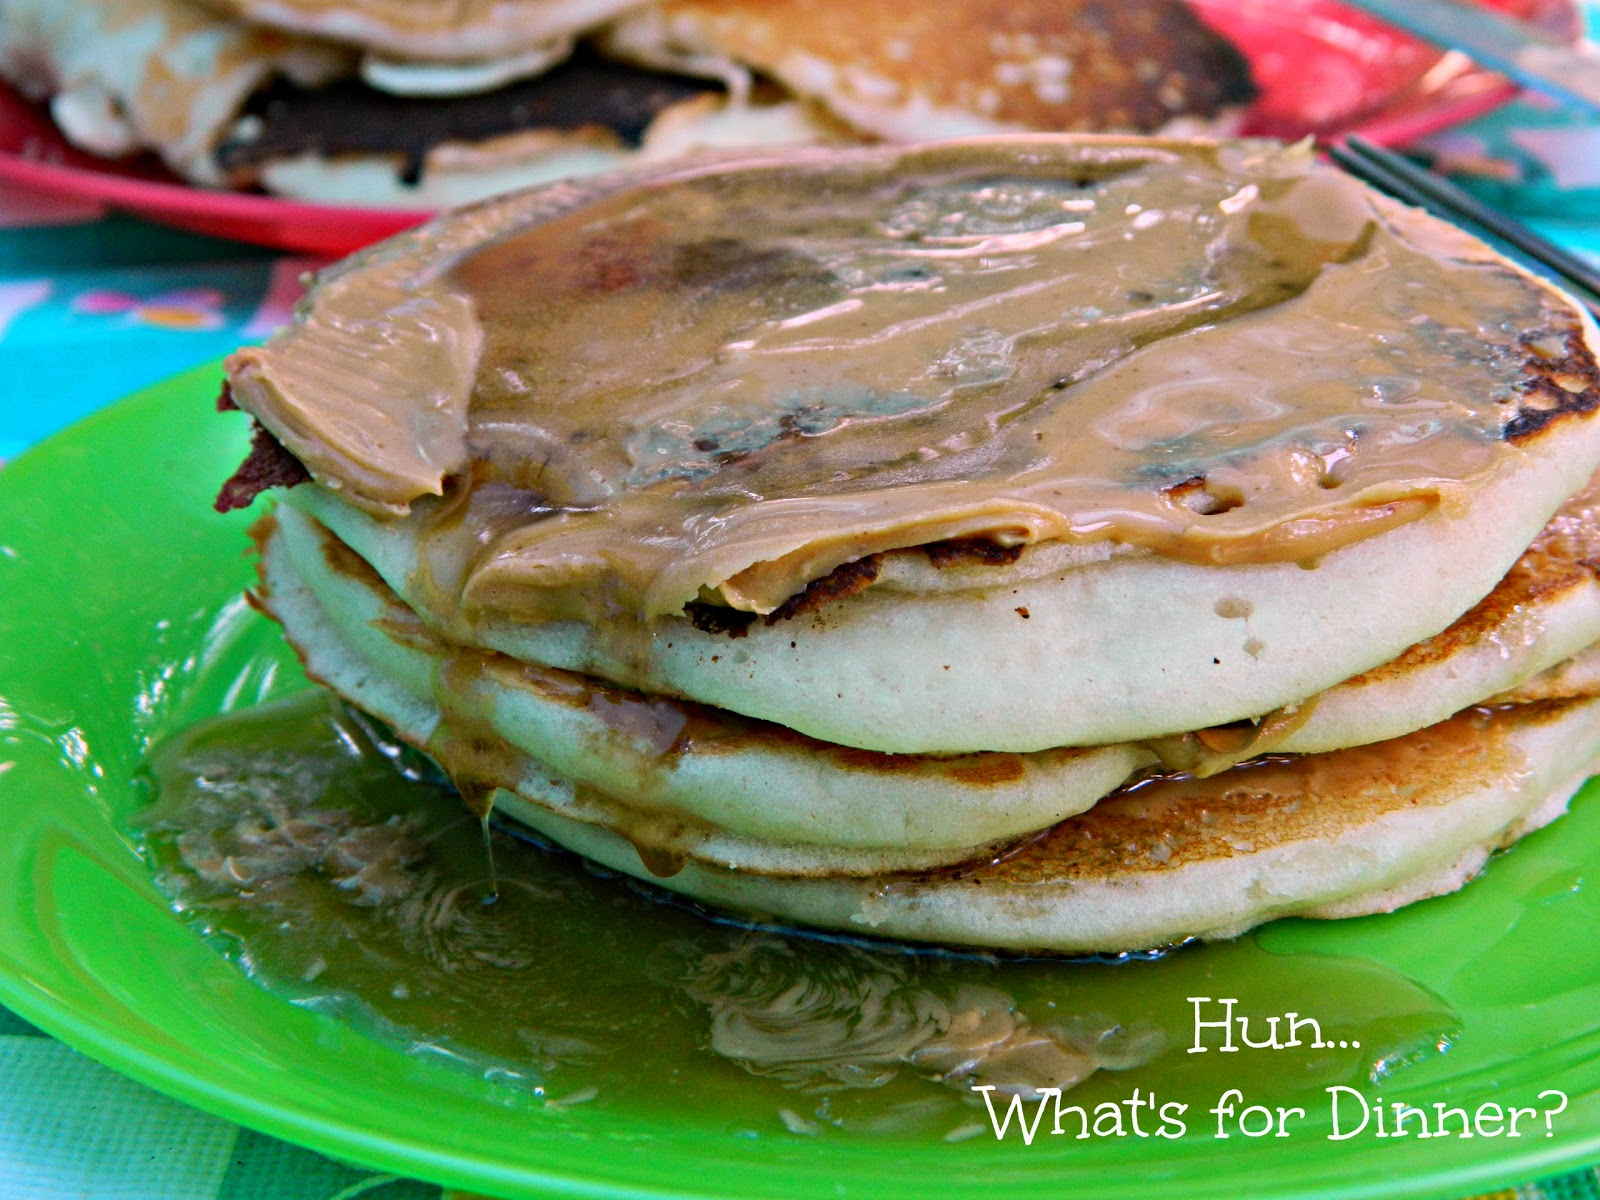 Hun... What's for Dinner? | Camping Food: Homemade Pancake Mix